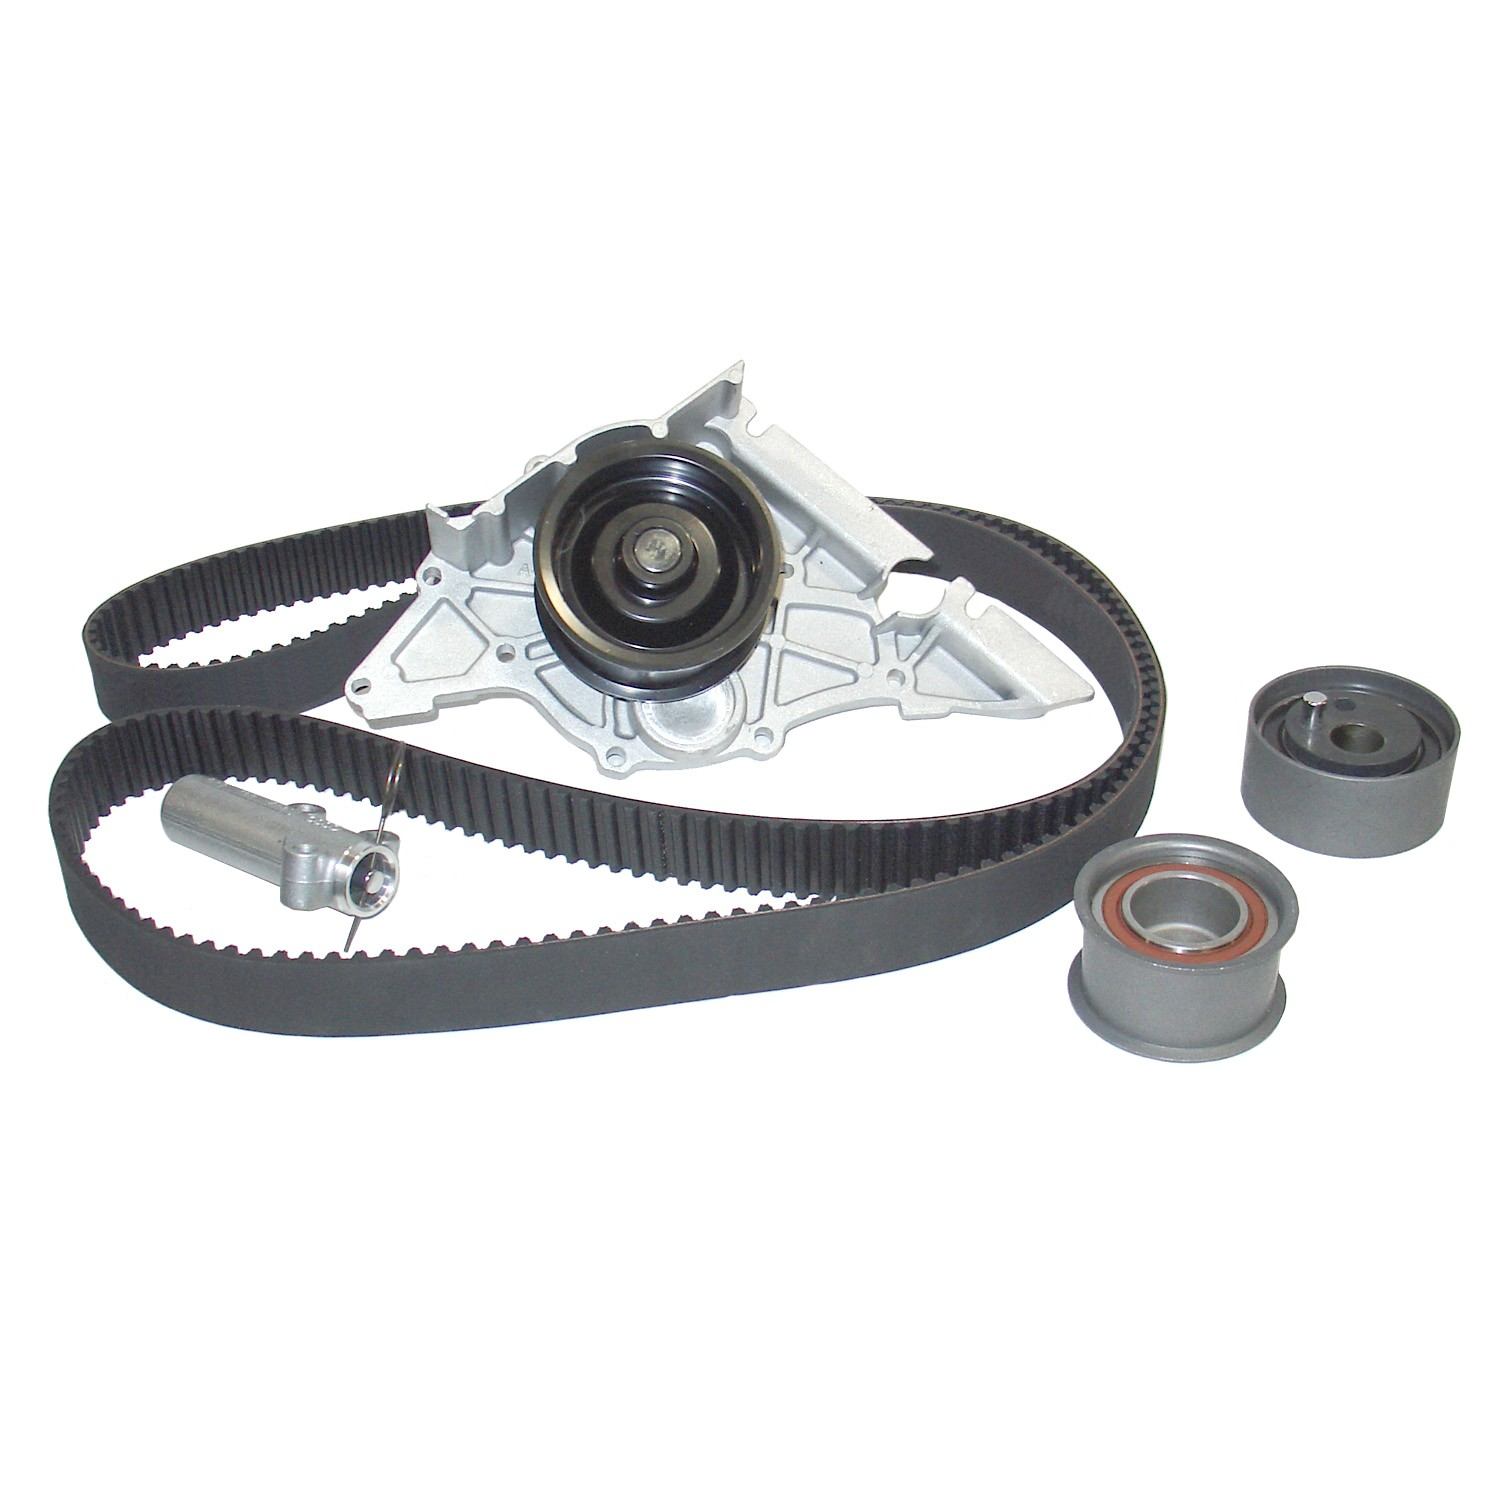 hight resolution of 2000 volkswagen passat engine timing belt kit with water pump aw awk1325